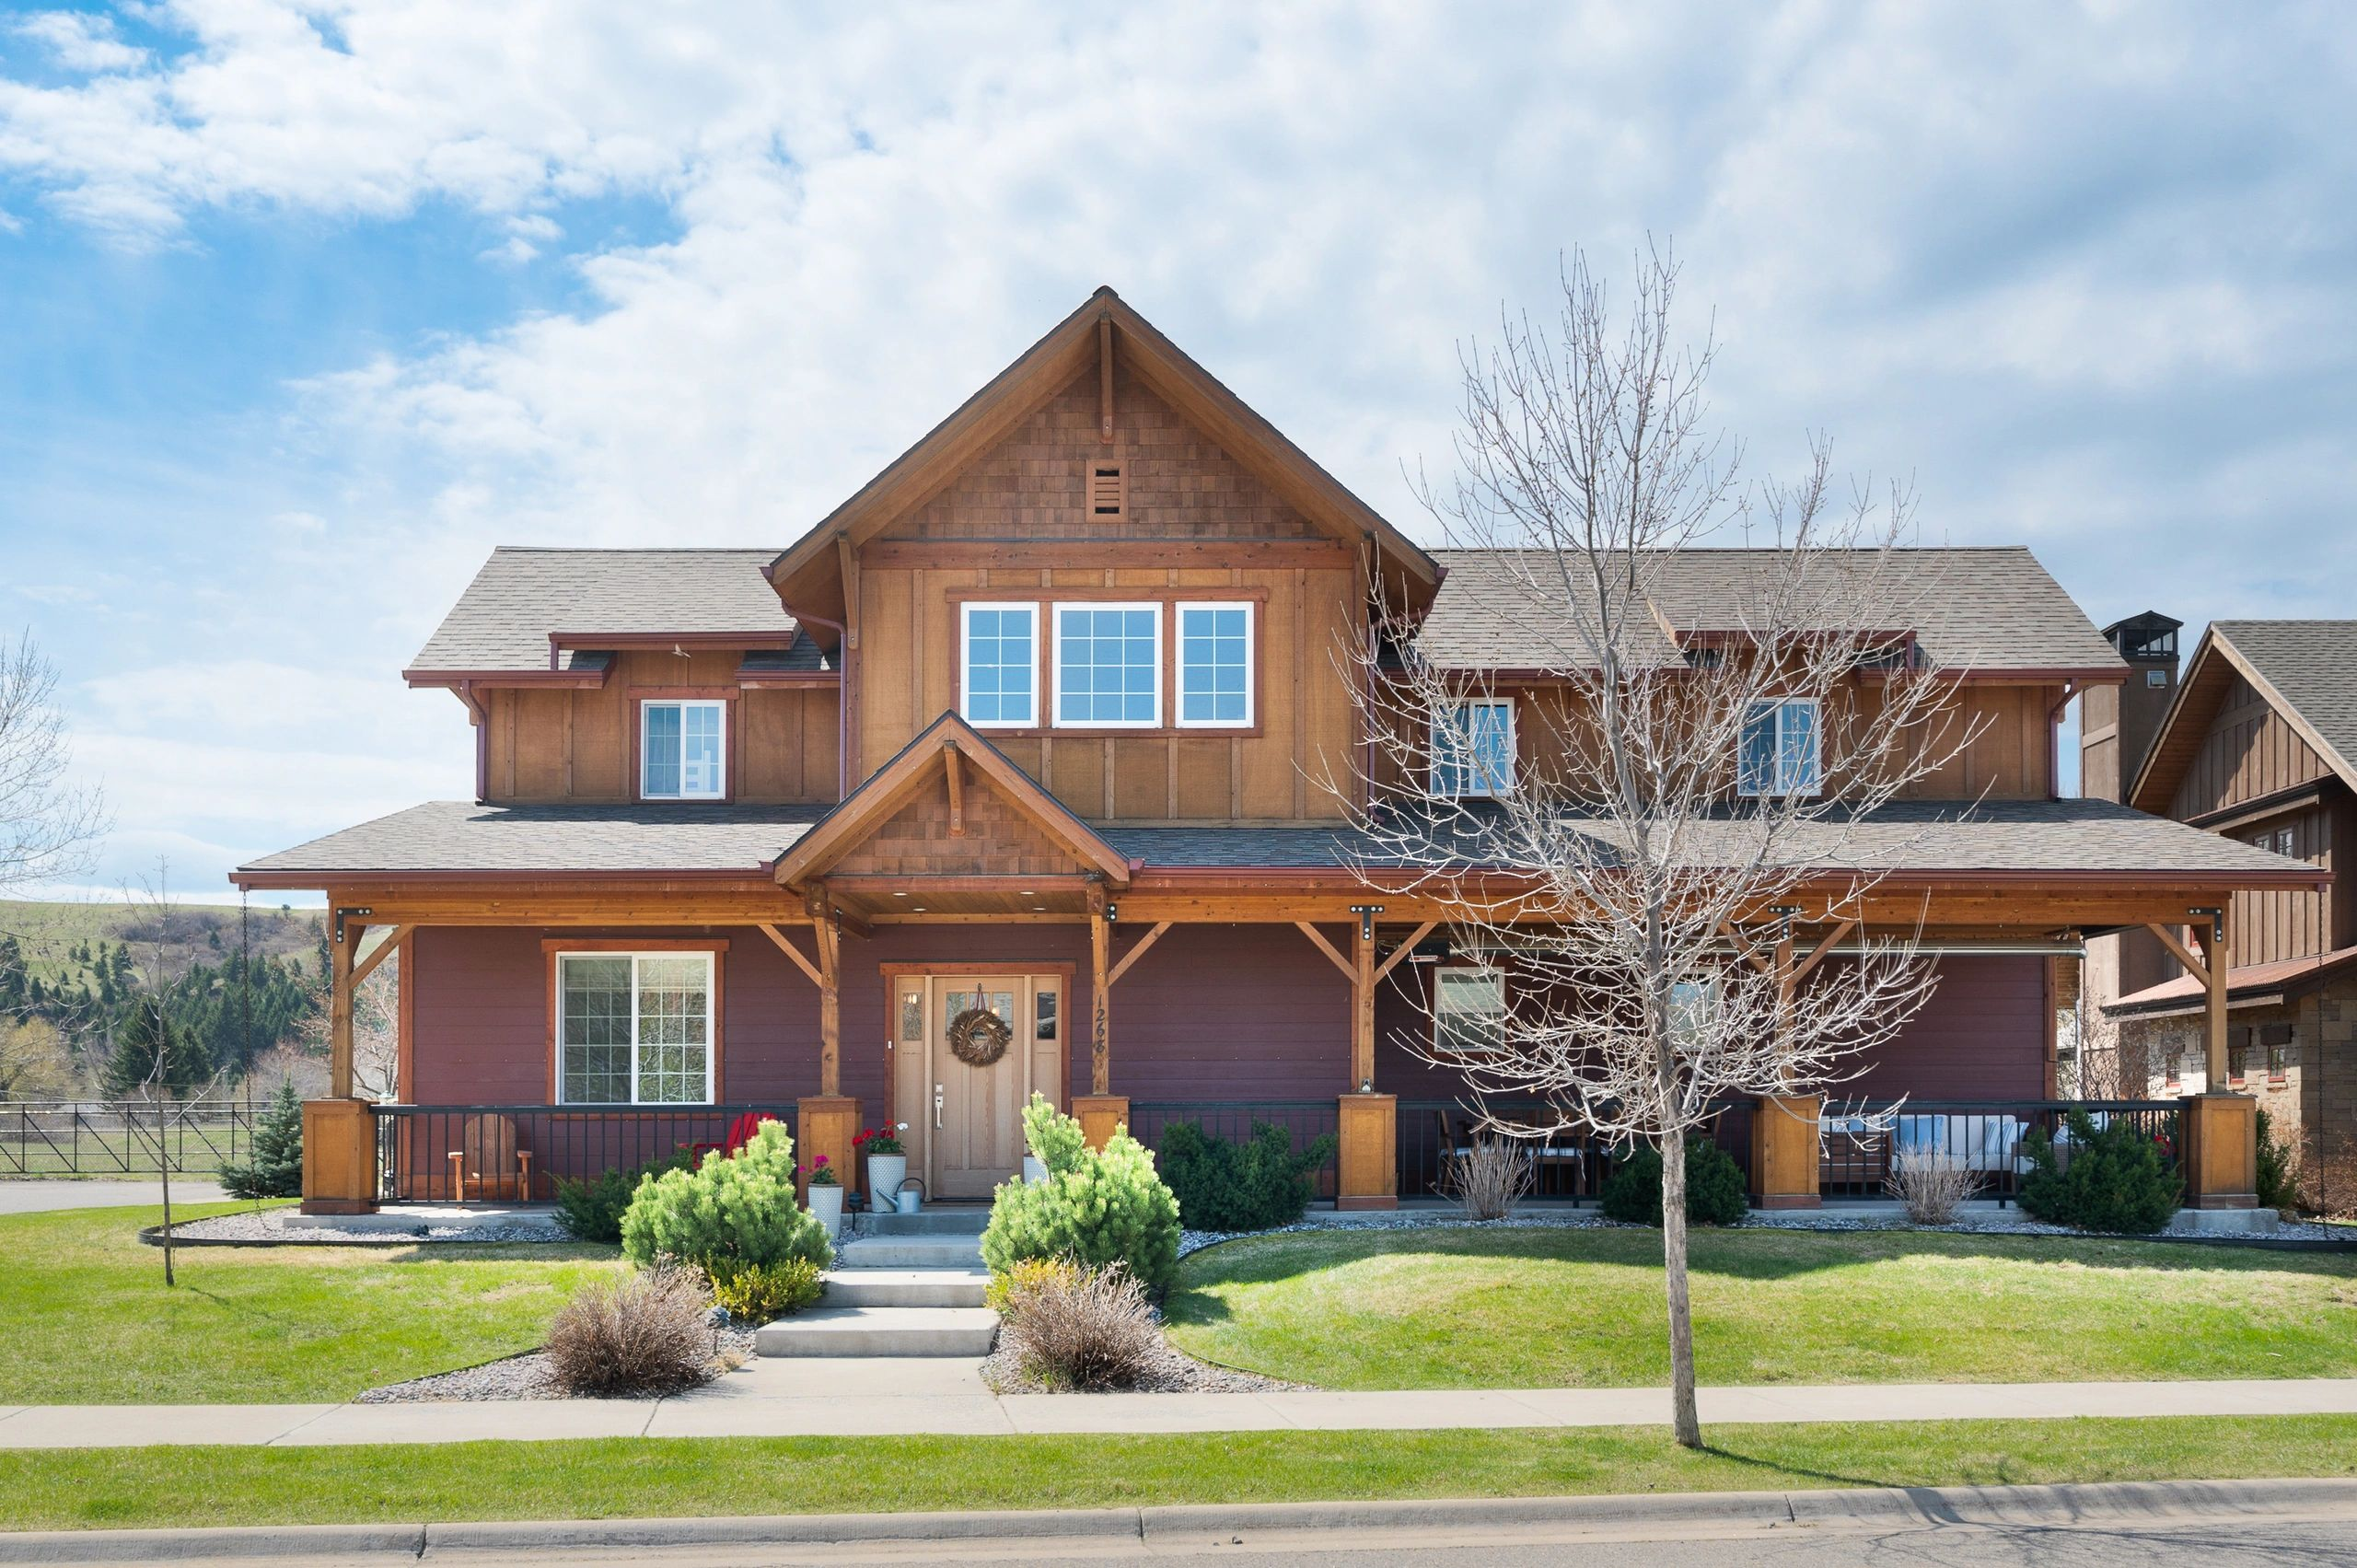 Located on the NE side of Bozeman in the highly sought after Legends sub this home sits on a corner